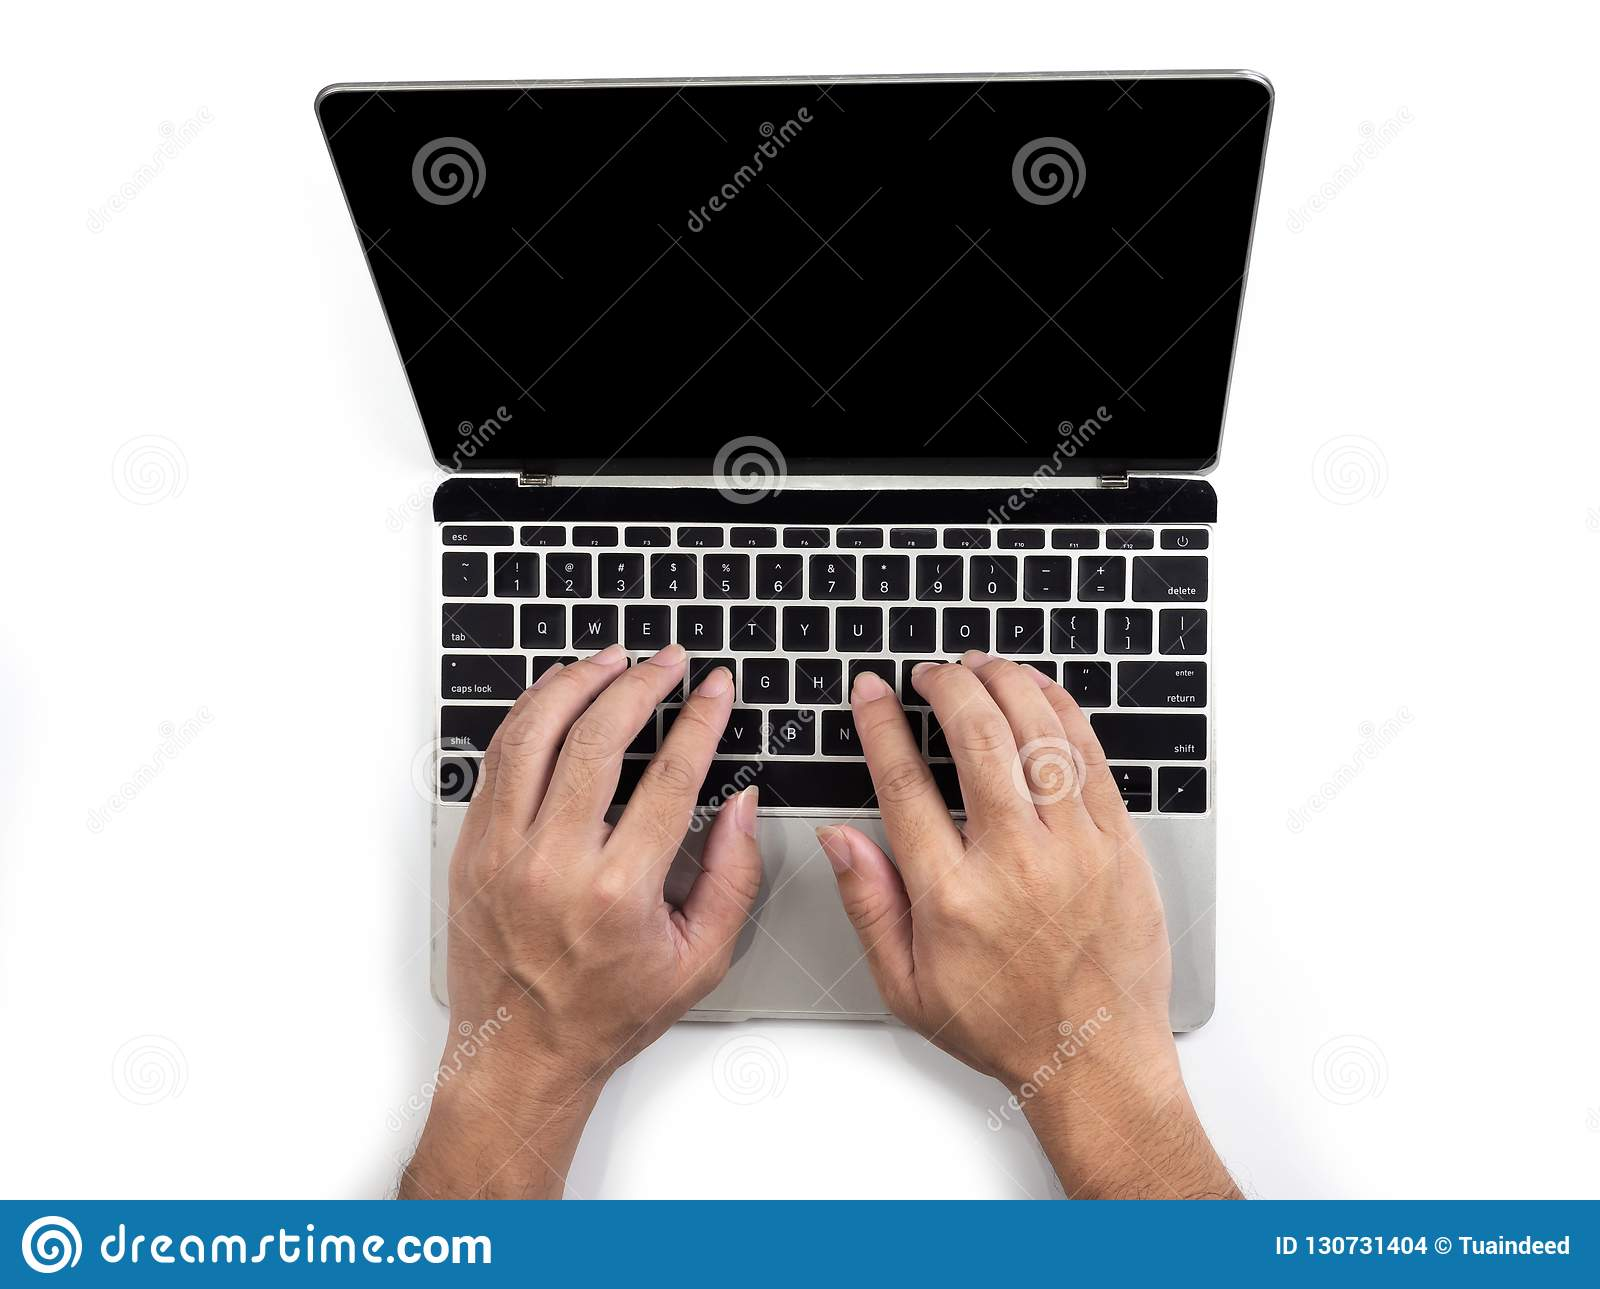 Top view of hands typing on computer laptop on white isolated background with clipping path.